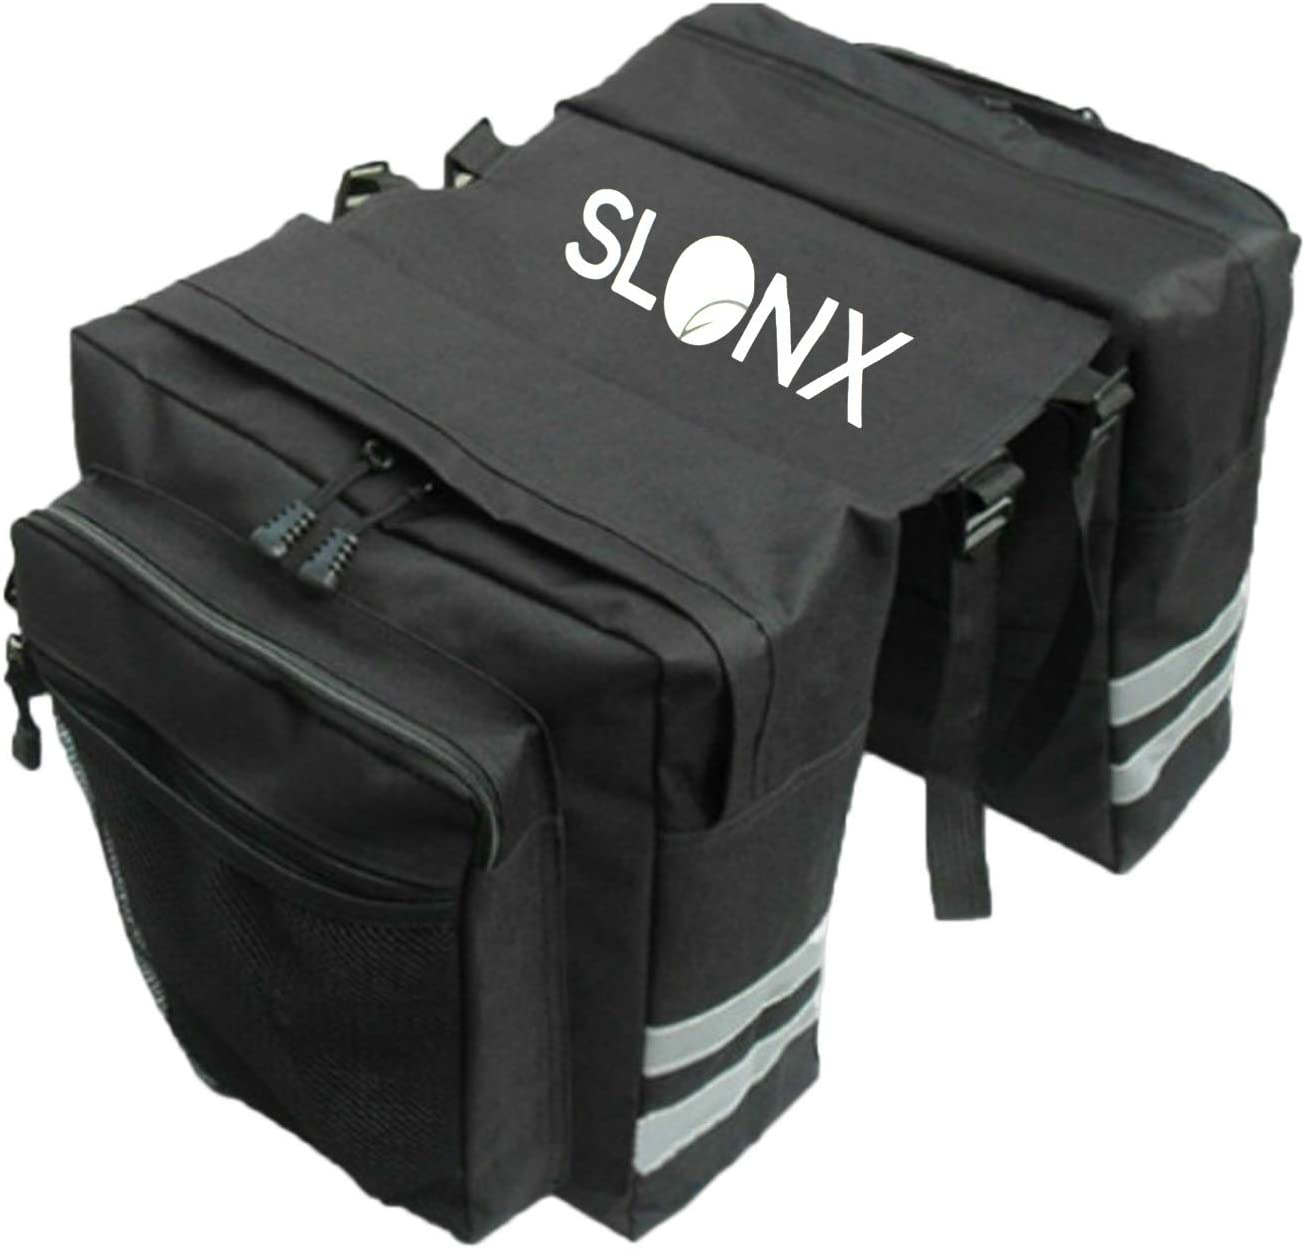 SlonX Bike Bags- Double Sided Panniers for Bicycles Rear Rack - Water and Tear Resistant Saddle Bag with Multiple Pockets and Adjustable Straps- 2 Reflective Lights Included for Road Safety